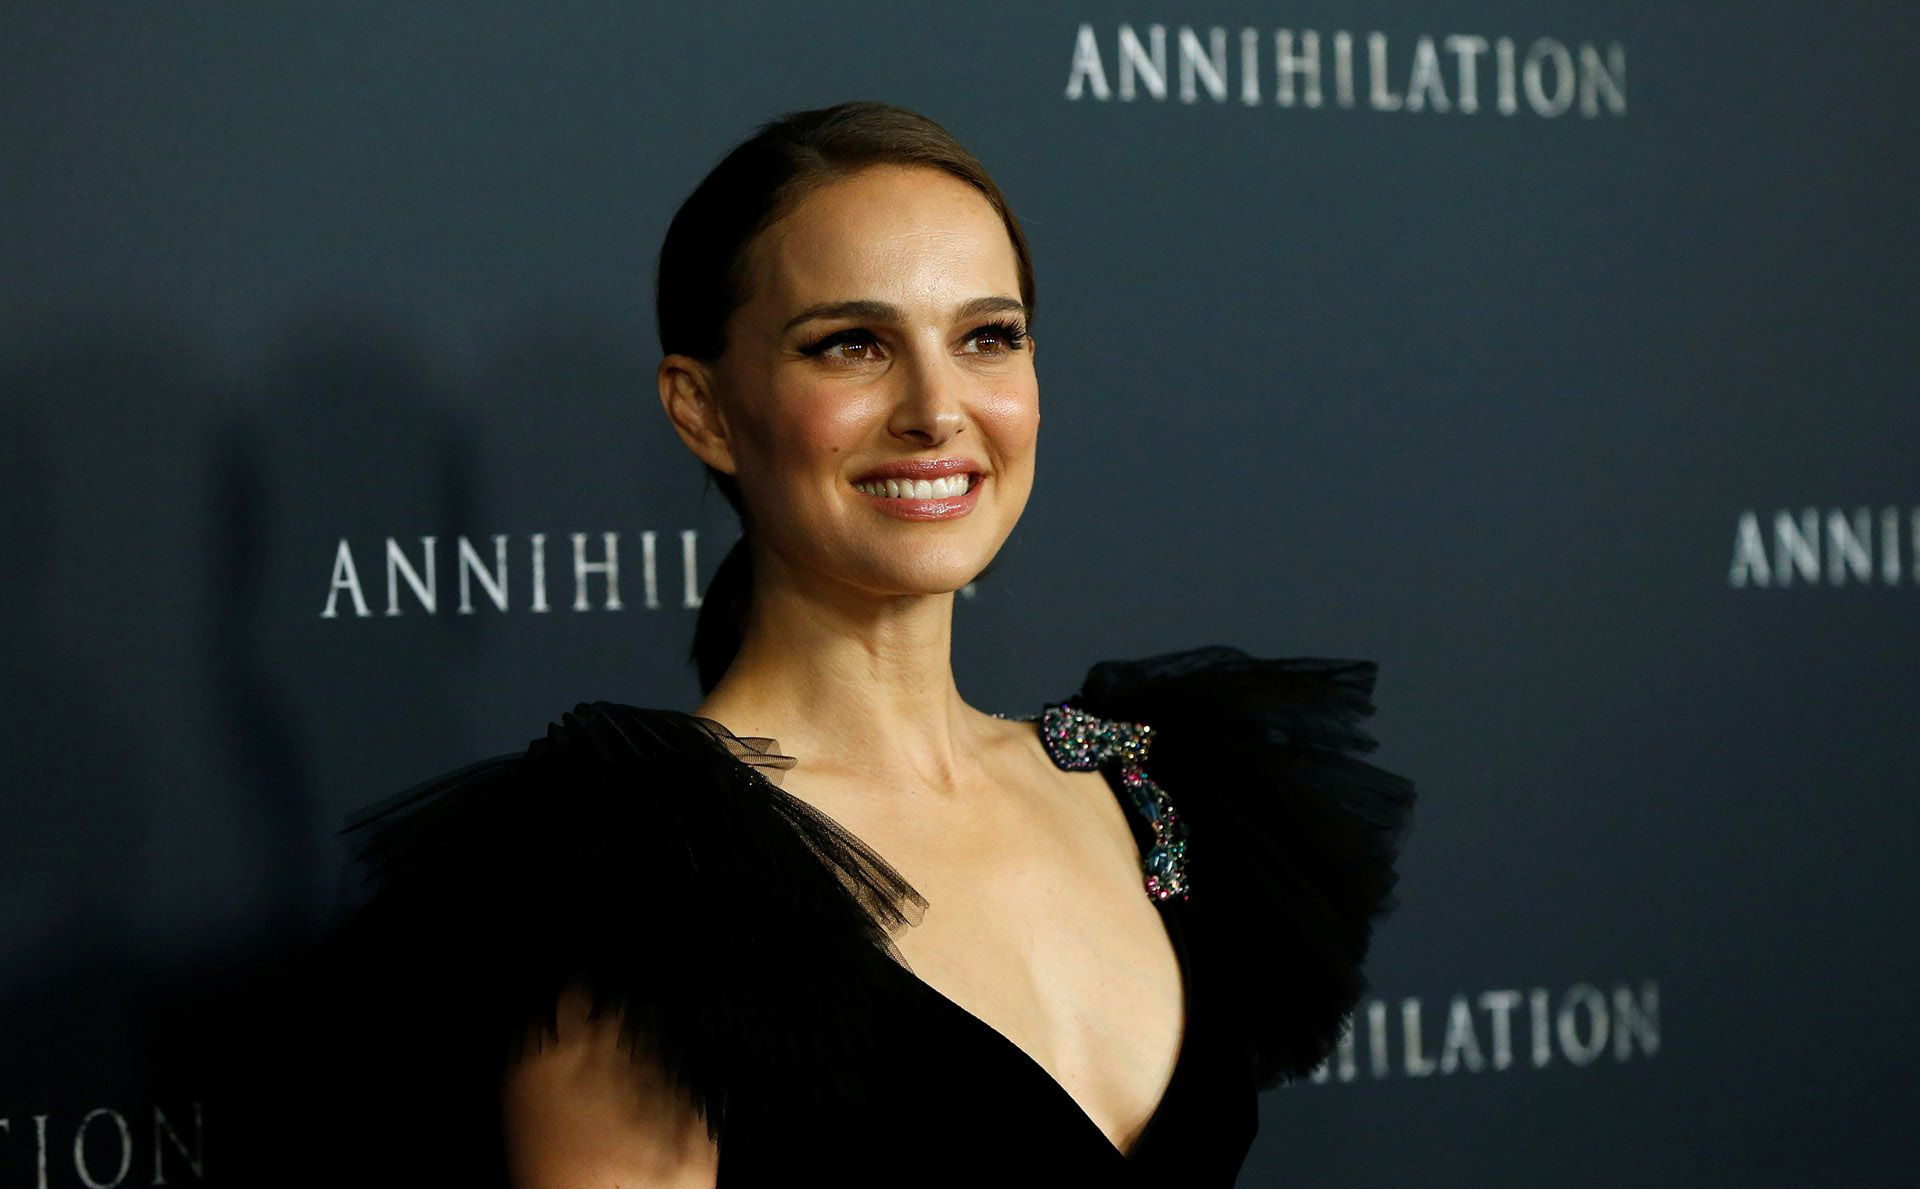 """Cast member Natalie Portman poses at the premiere for """"Annihilation"""" in Los Angeles, California, U.S., February 13, 2018. REUTERS/Mario Anzuoni"""